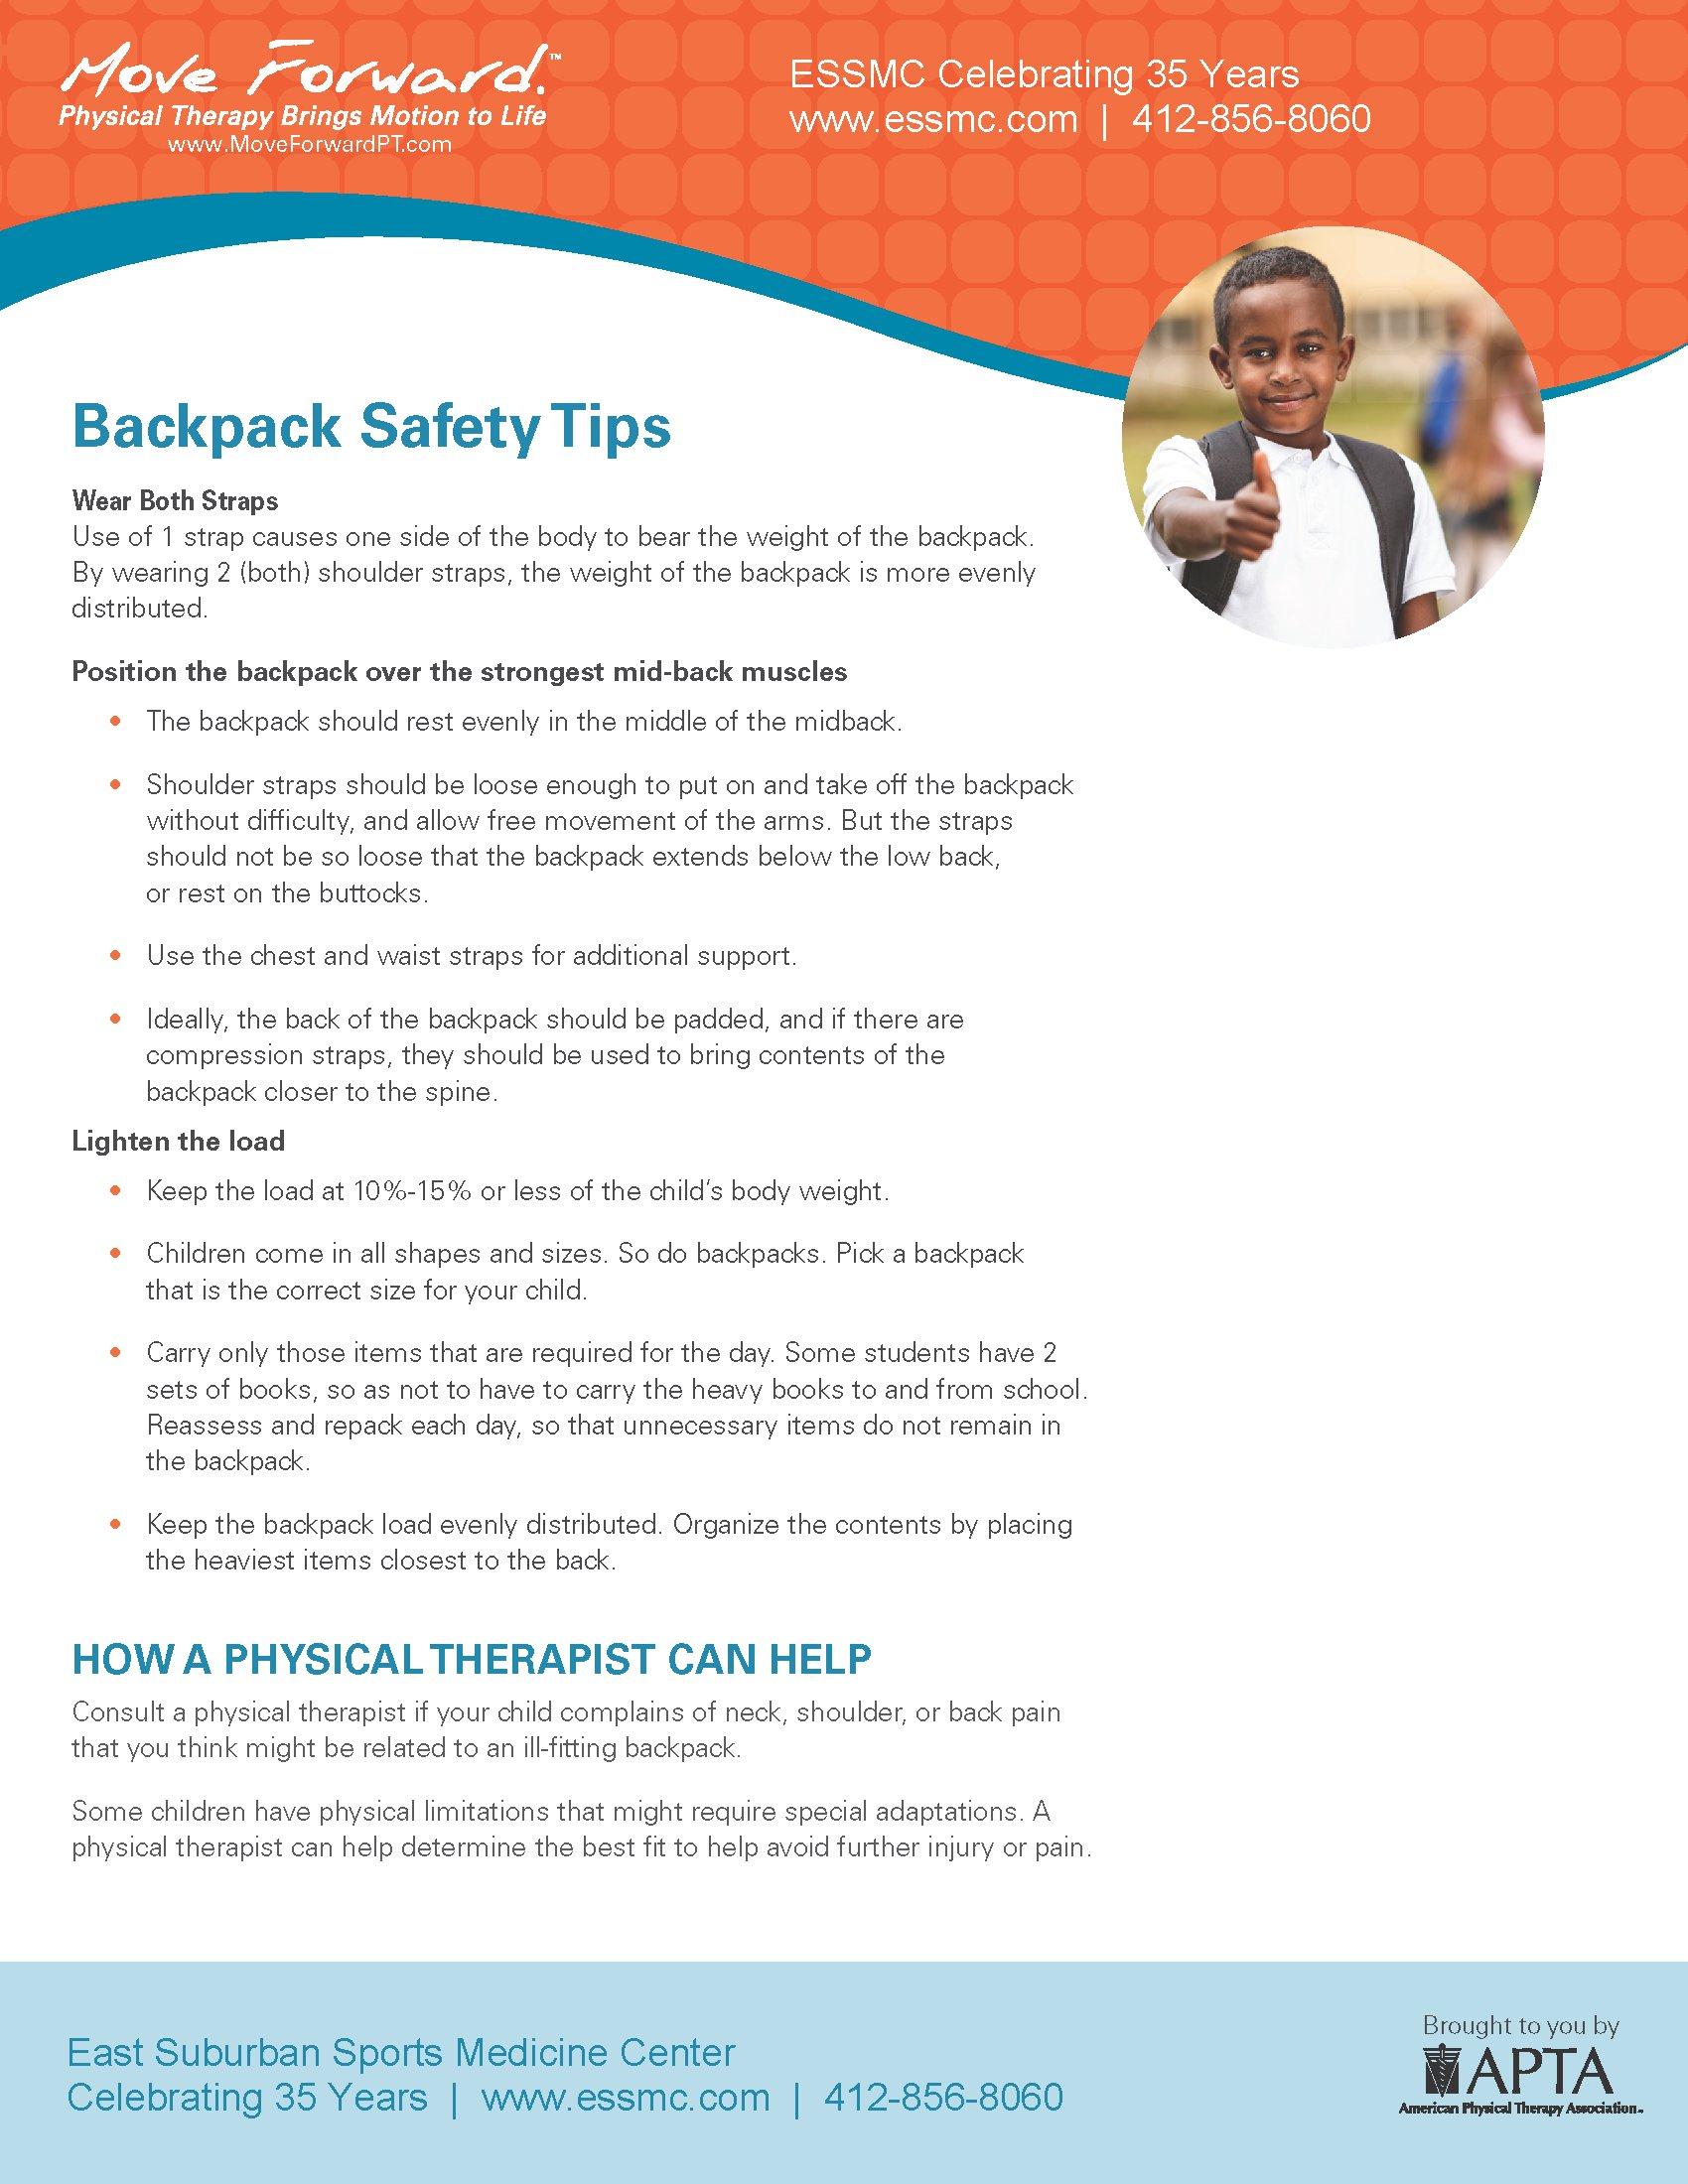 backpack-safety-tips